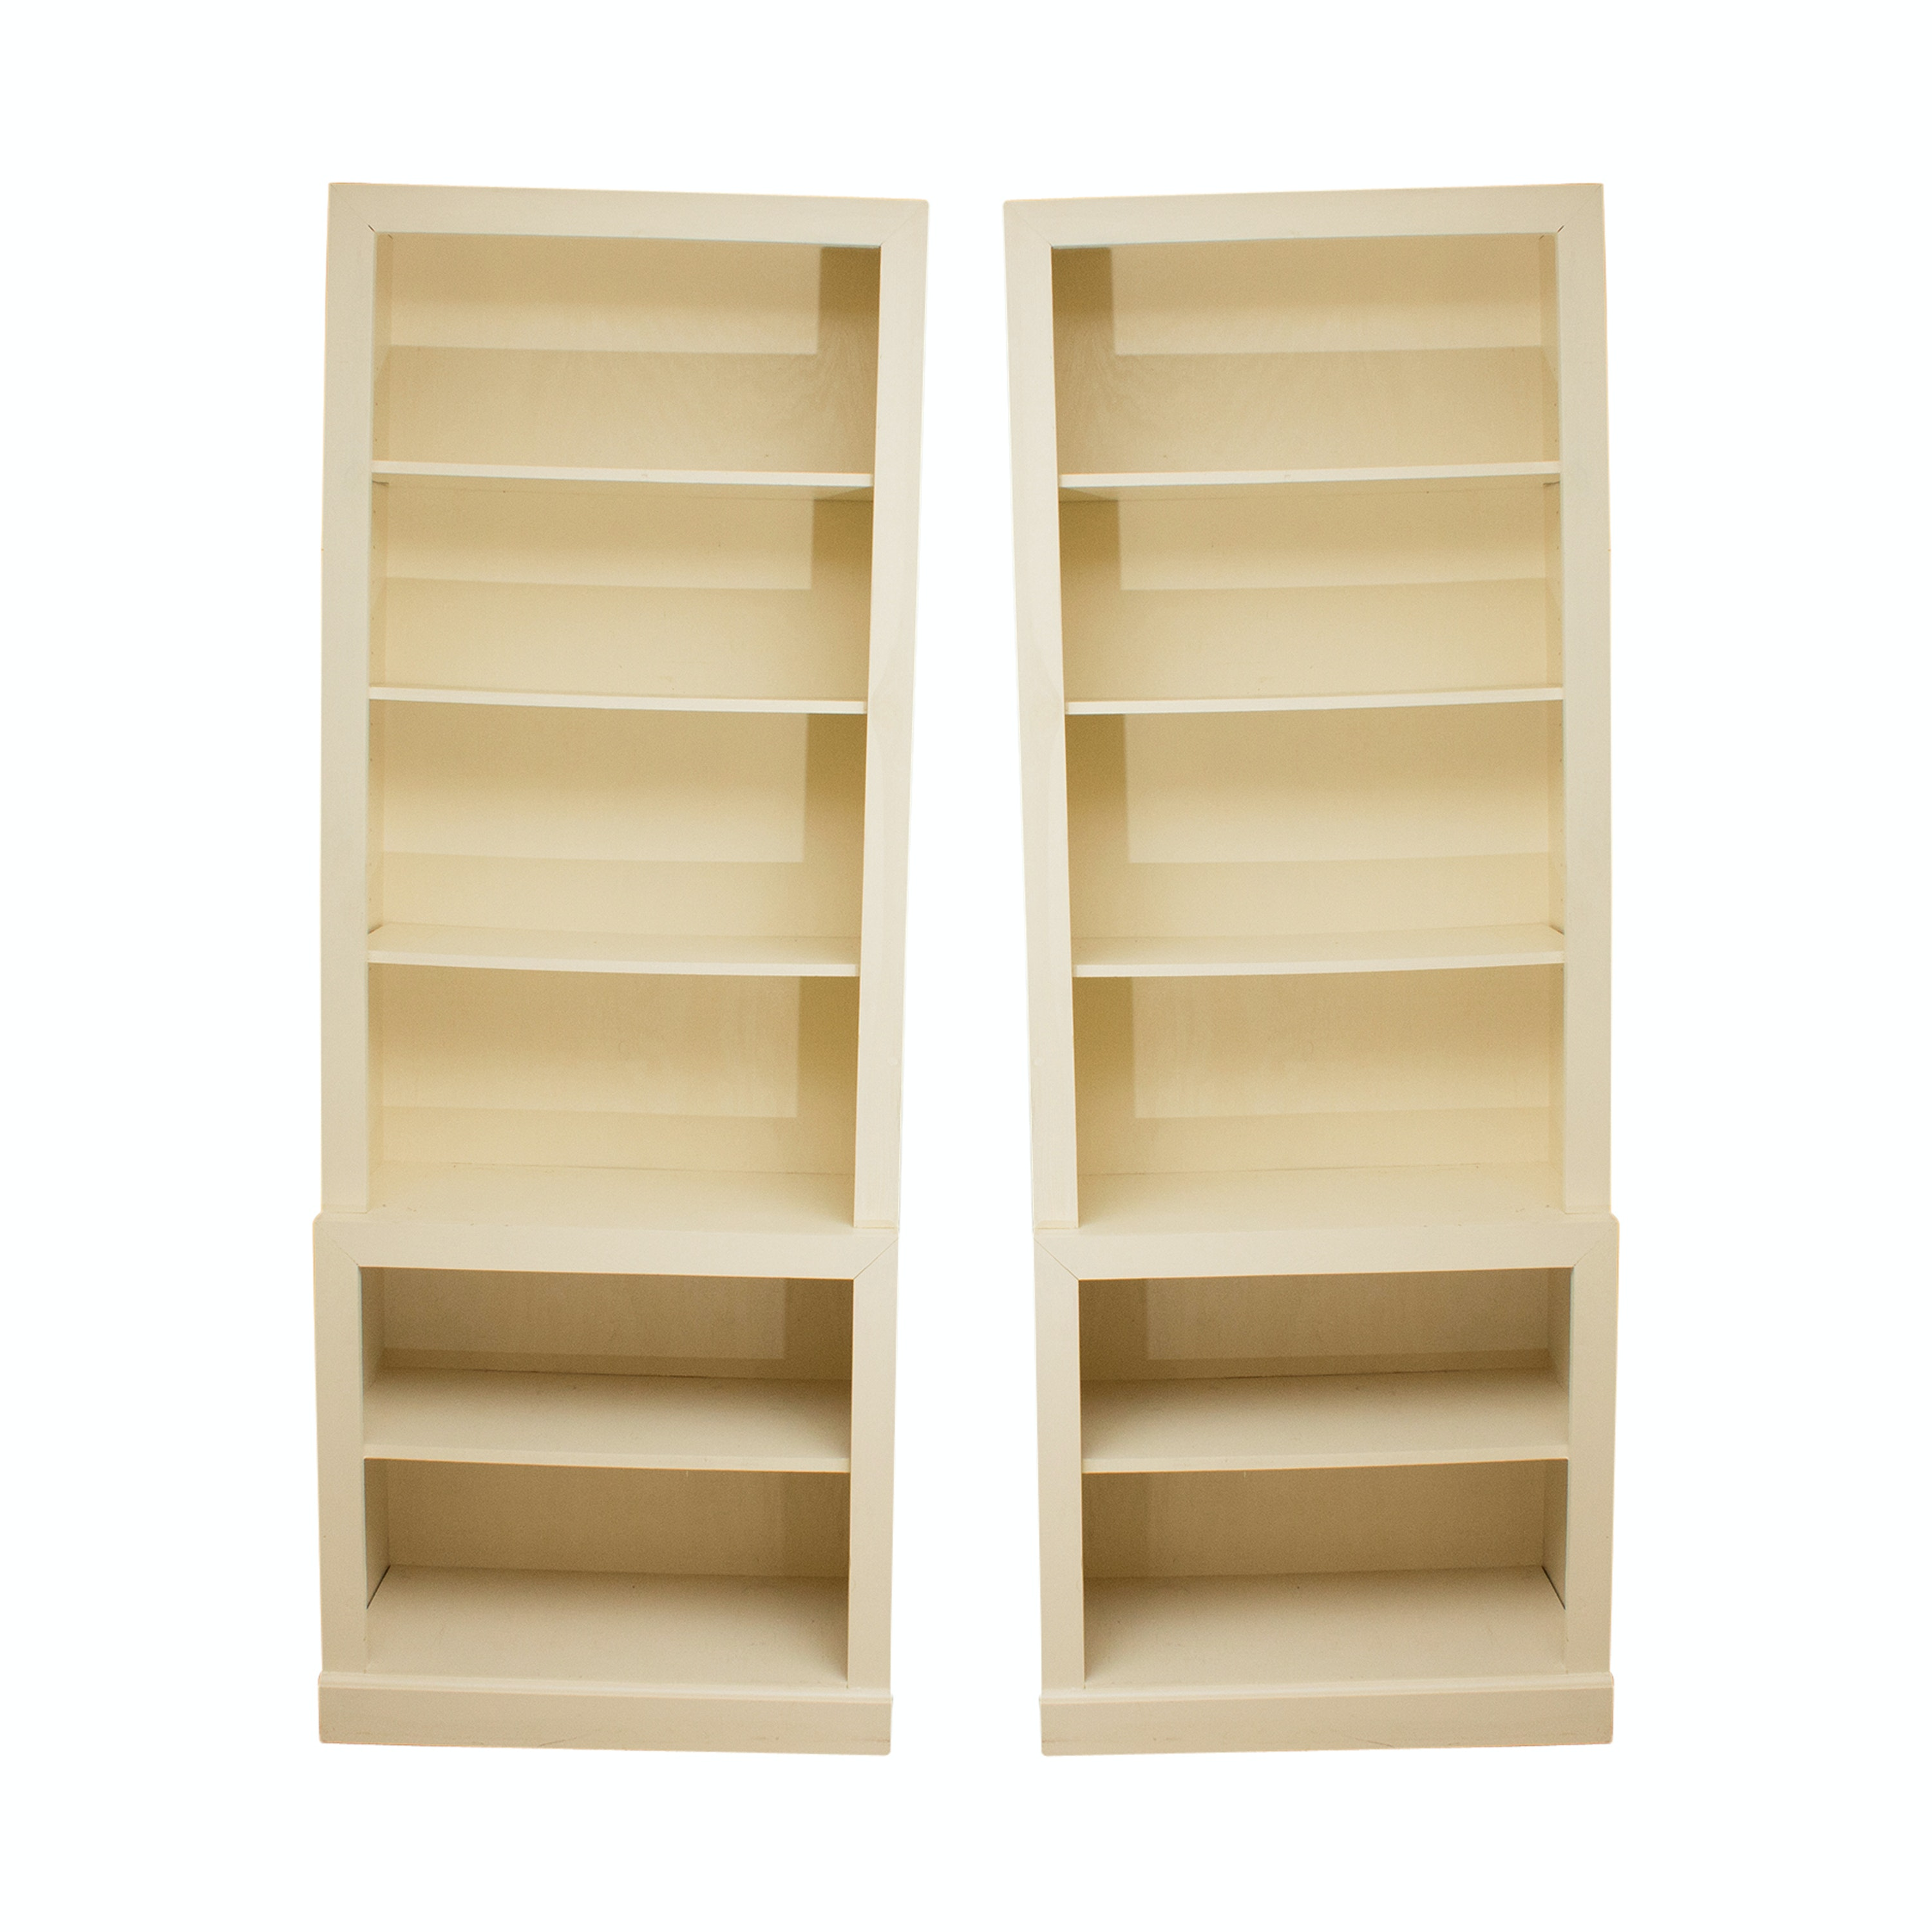 Pair of Wooden Library Bookcases